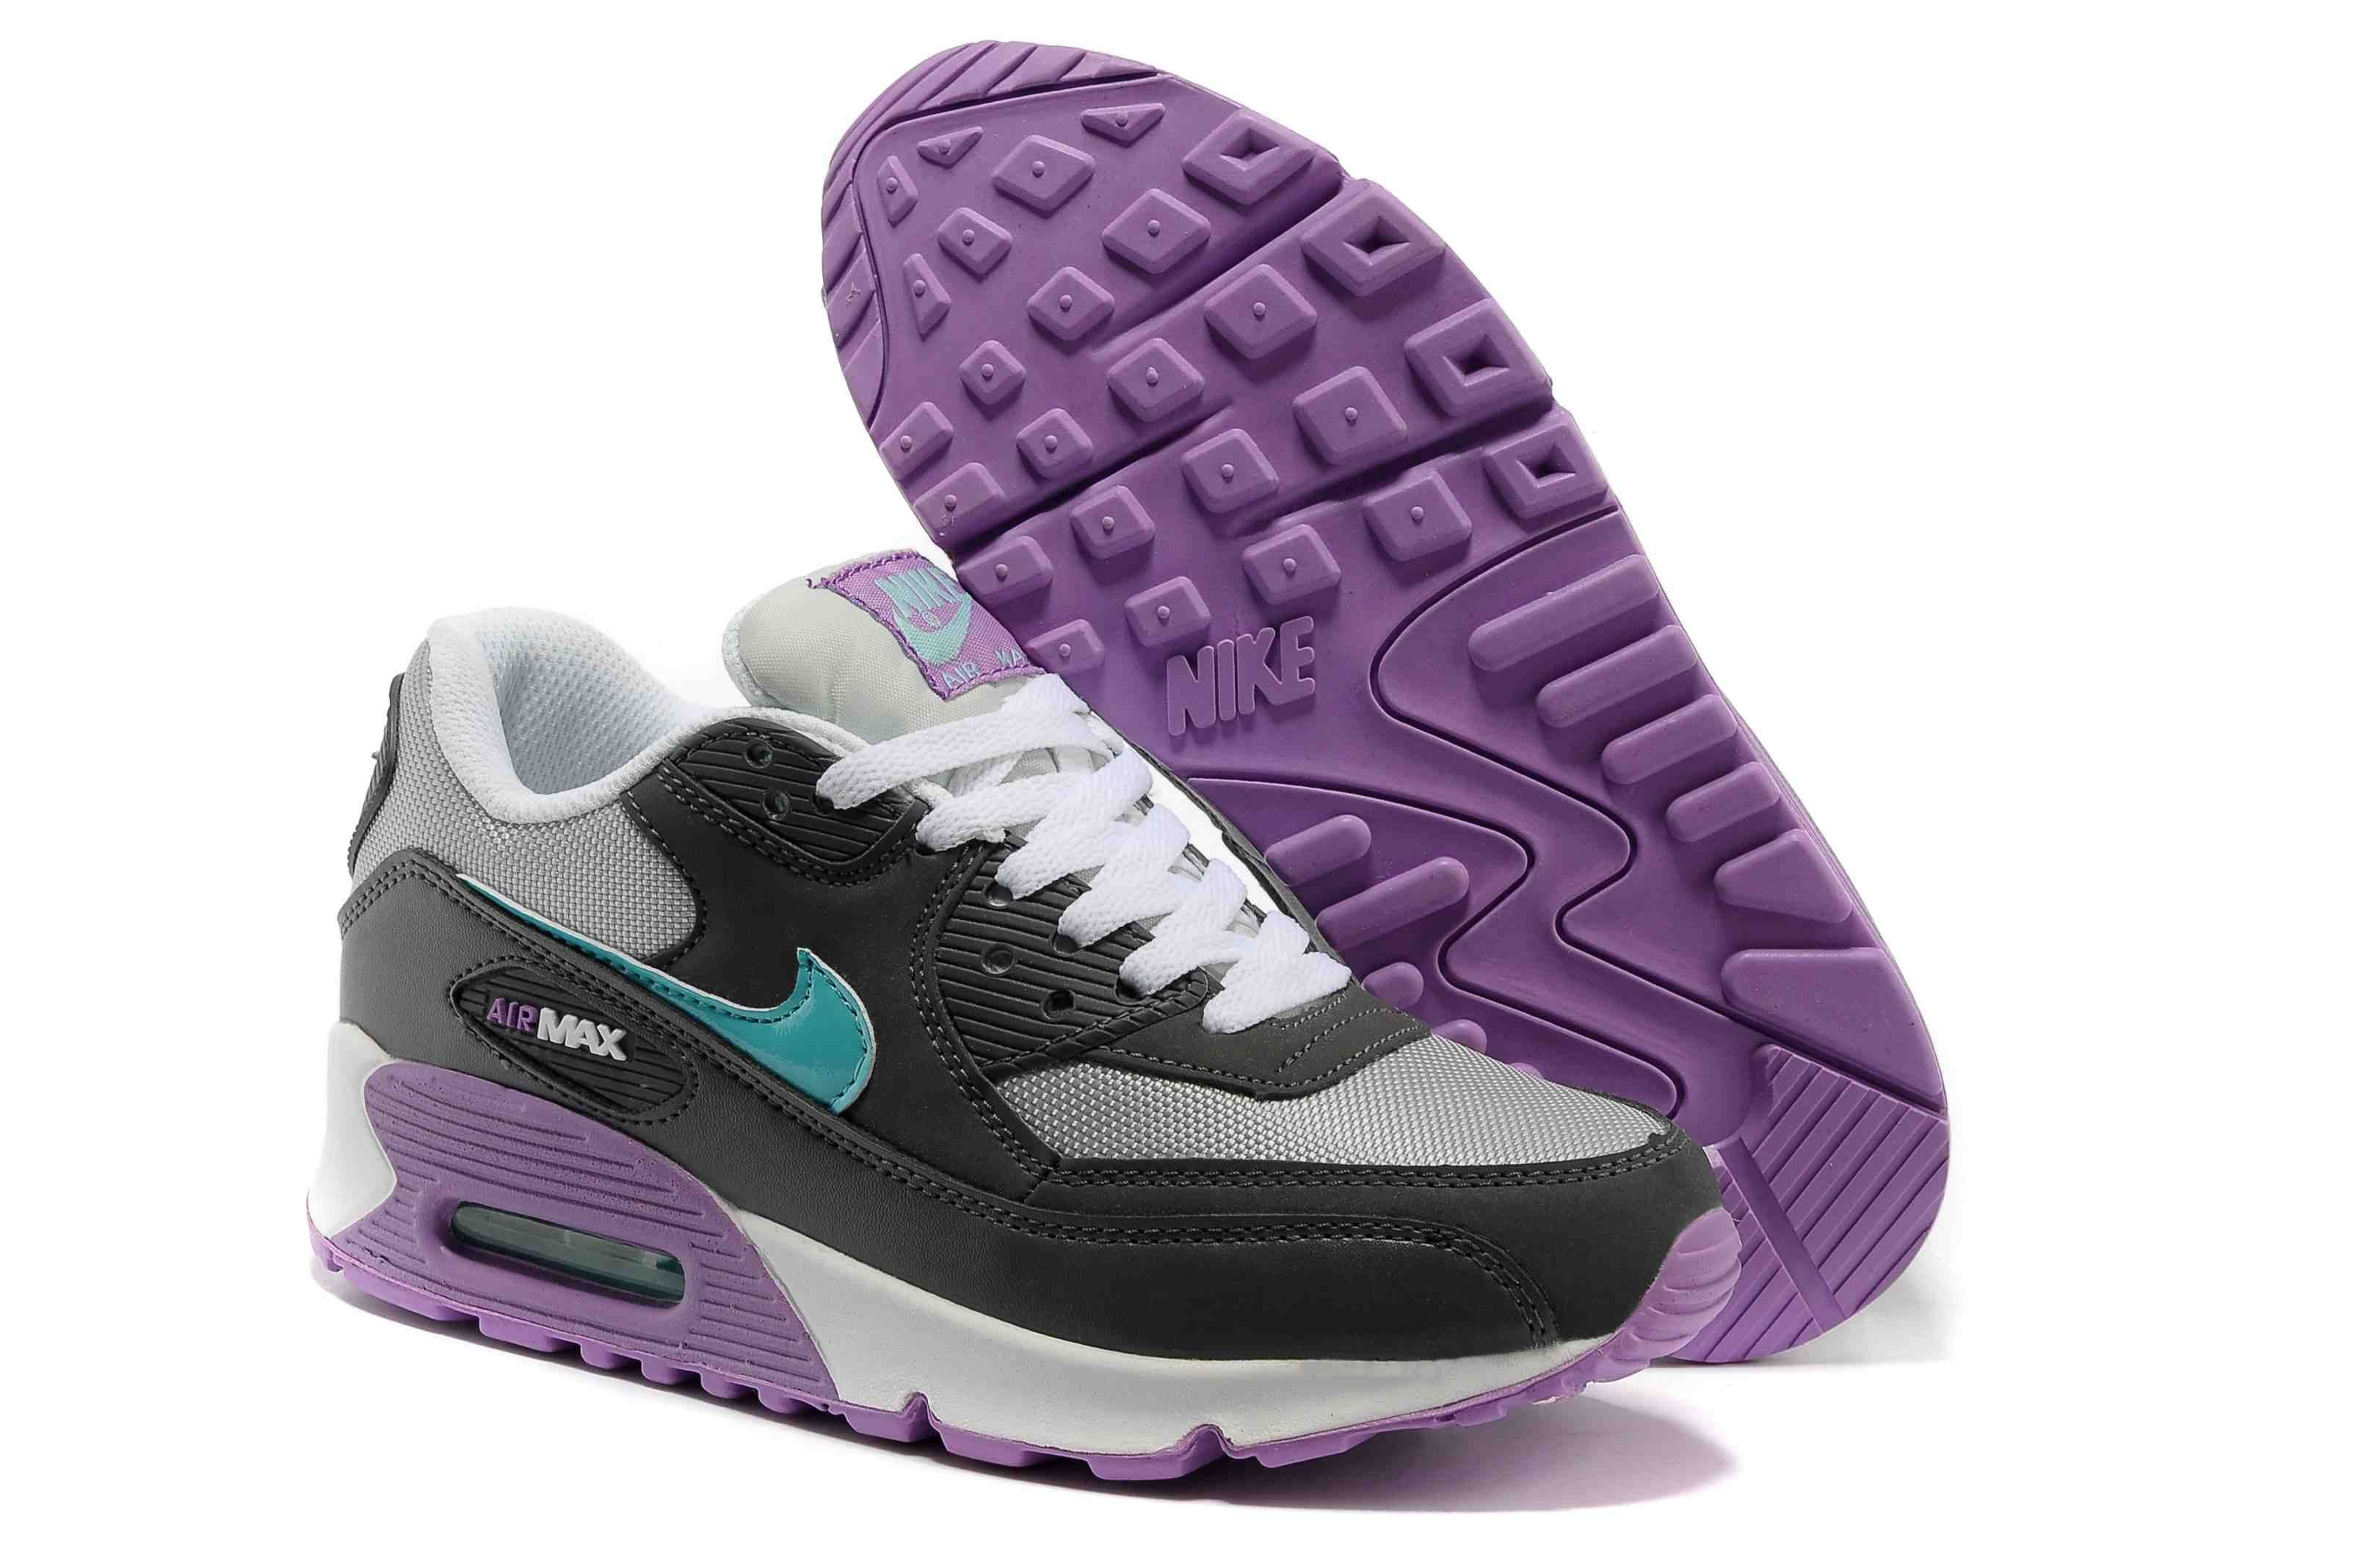 official photos ad3b1 a739d Nike Air Max 90 Femme,basket montante nike,air max 90 pas cher pour